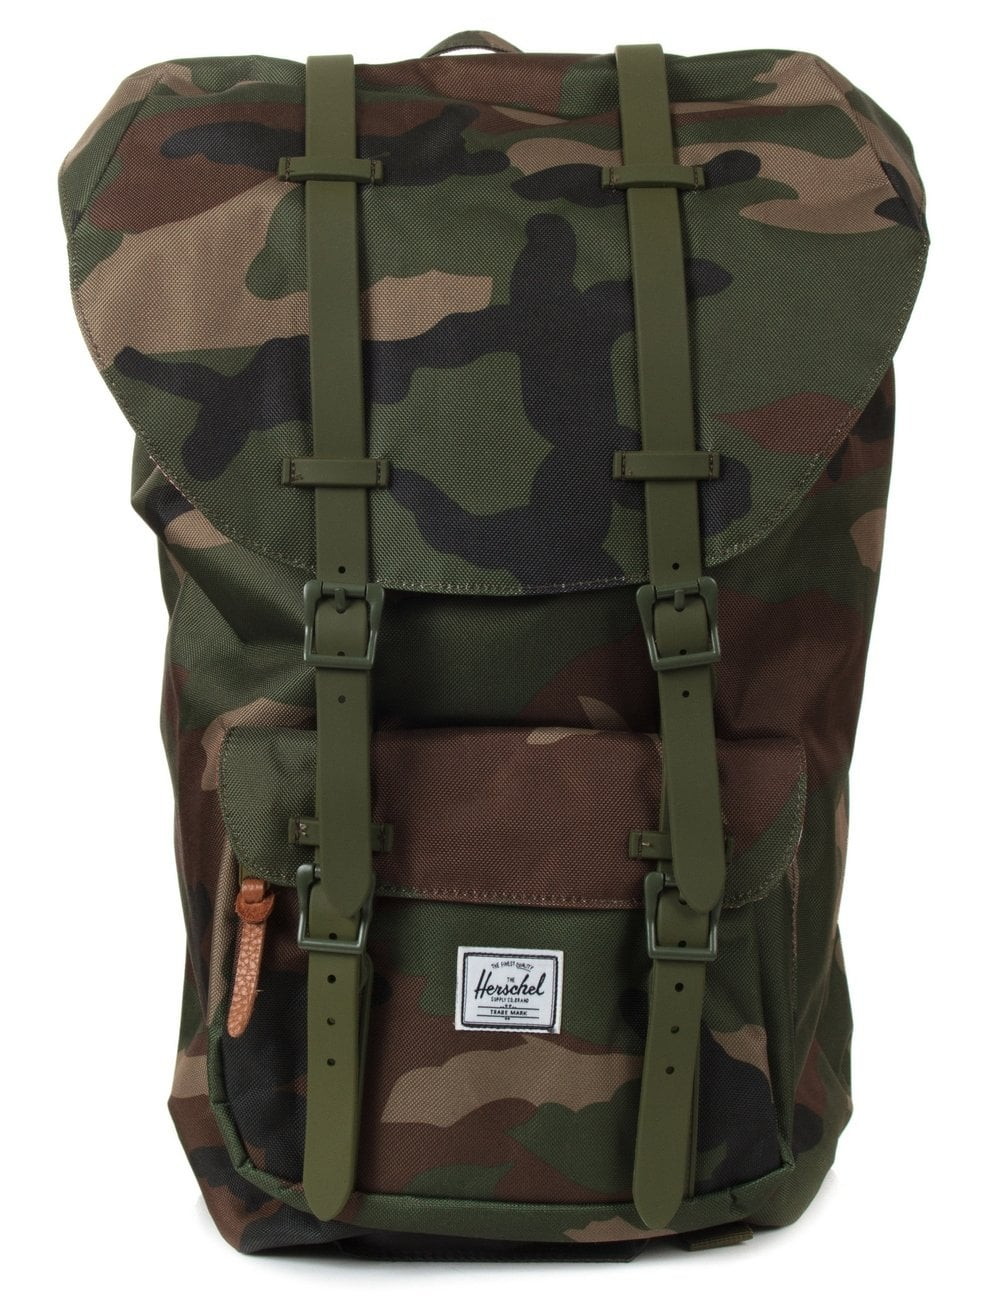 5e34e1c7e22 Herschel Supply Co Little America - Woodland Camo - Accessories from ...